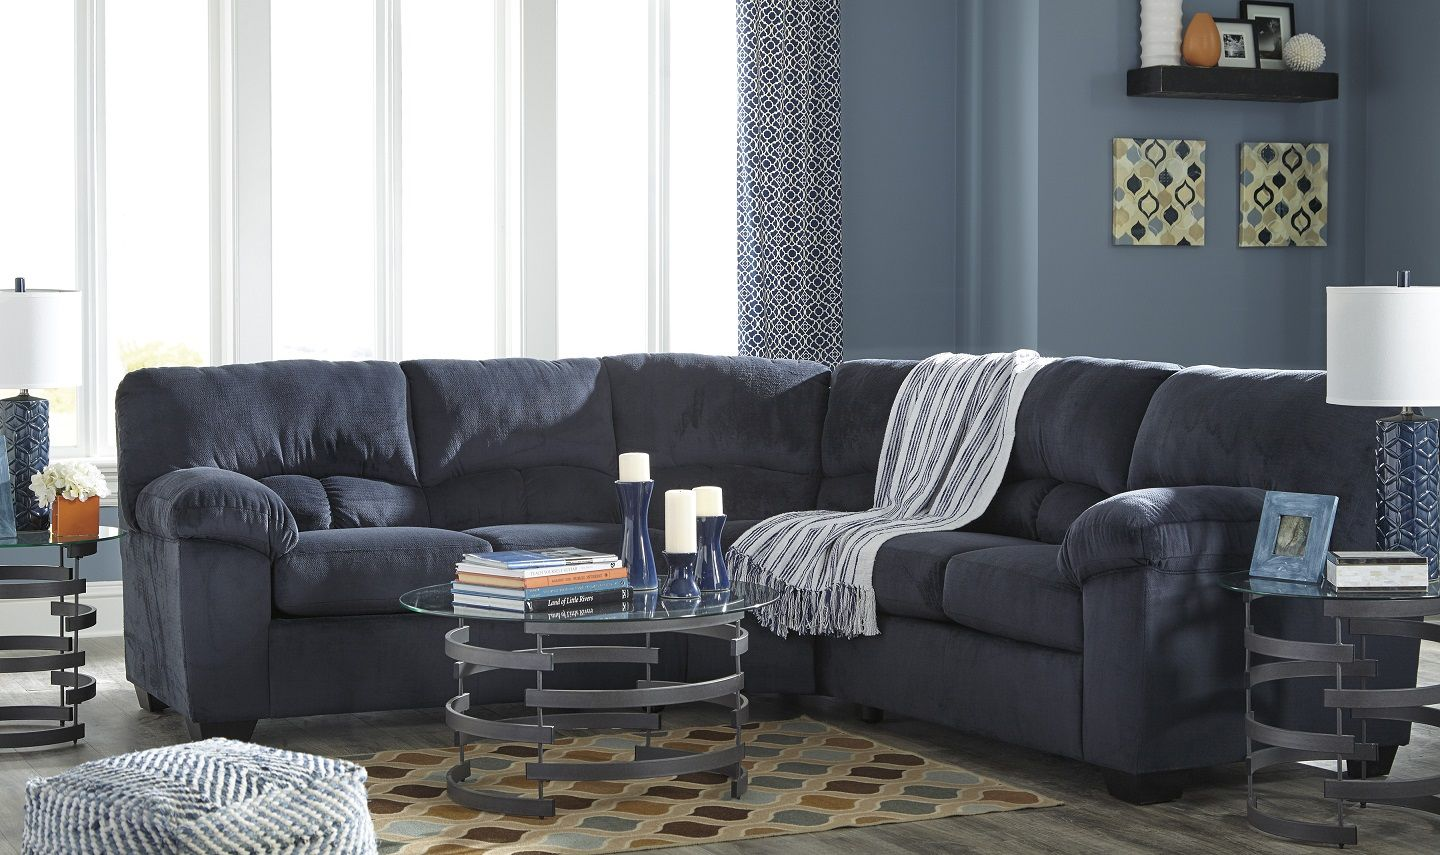 Dailey midnight blue sectional Furniture, Sectional sofa